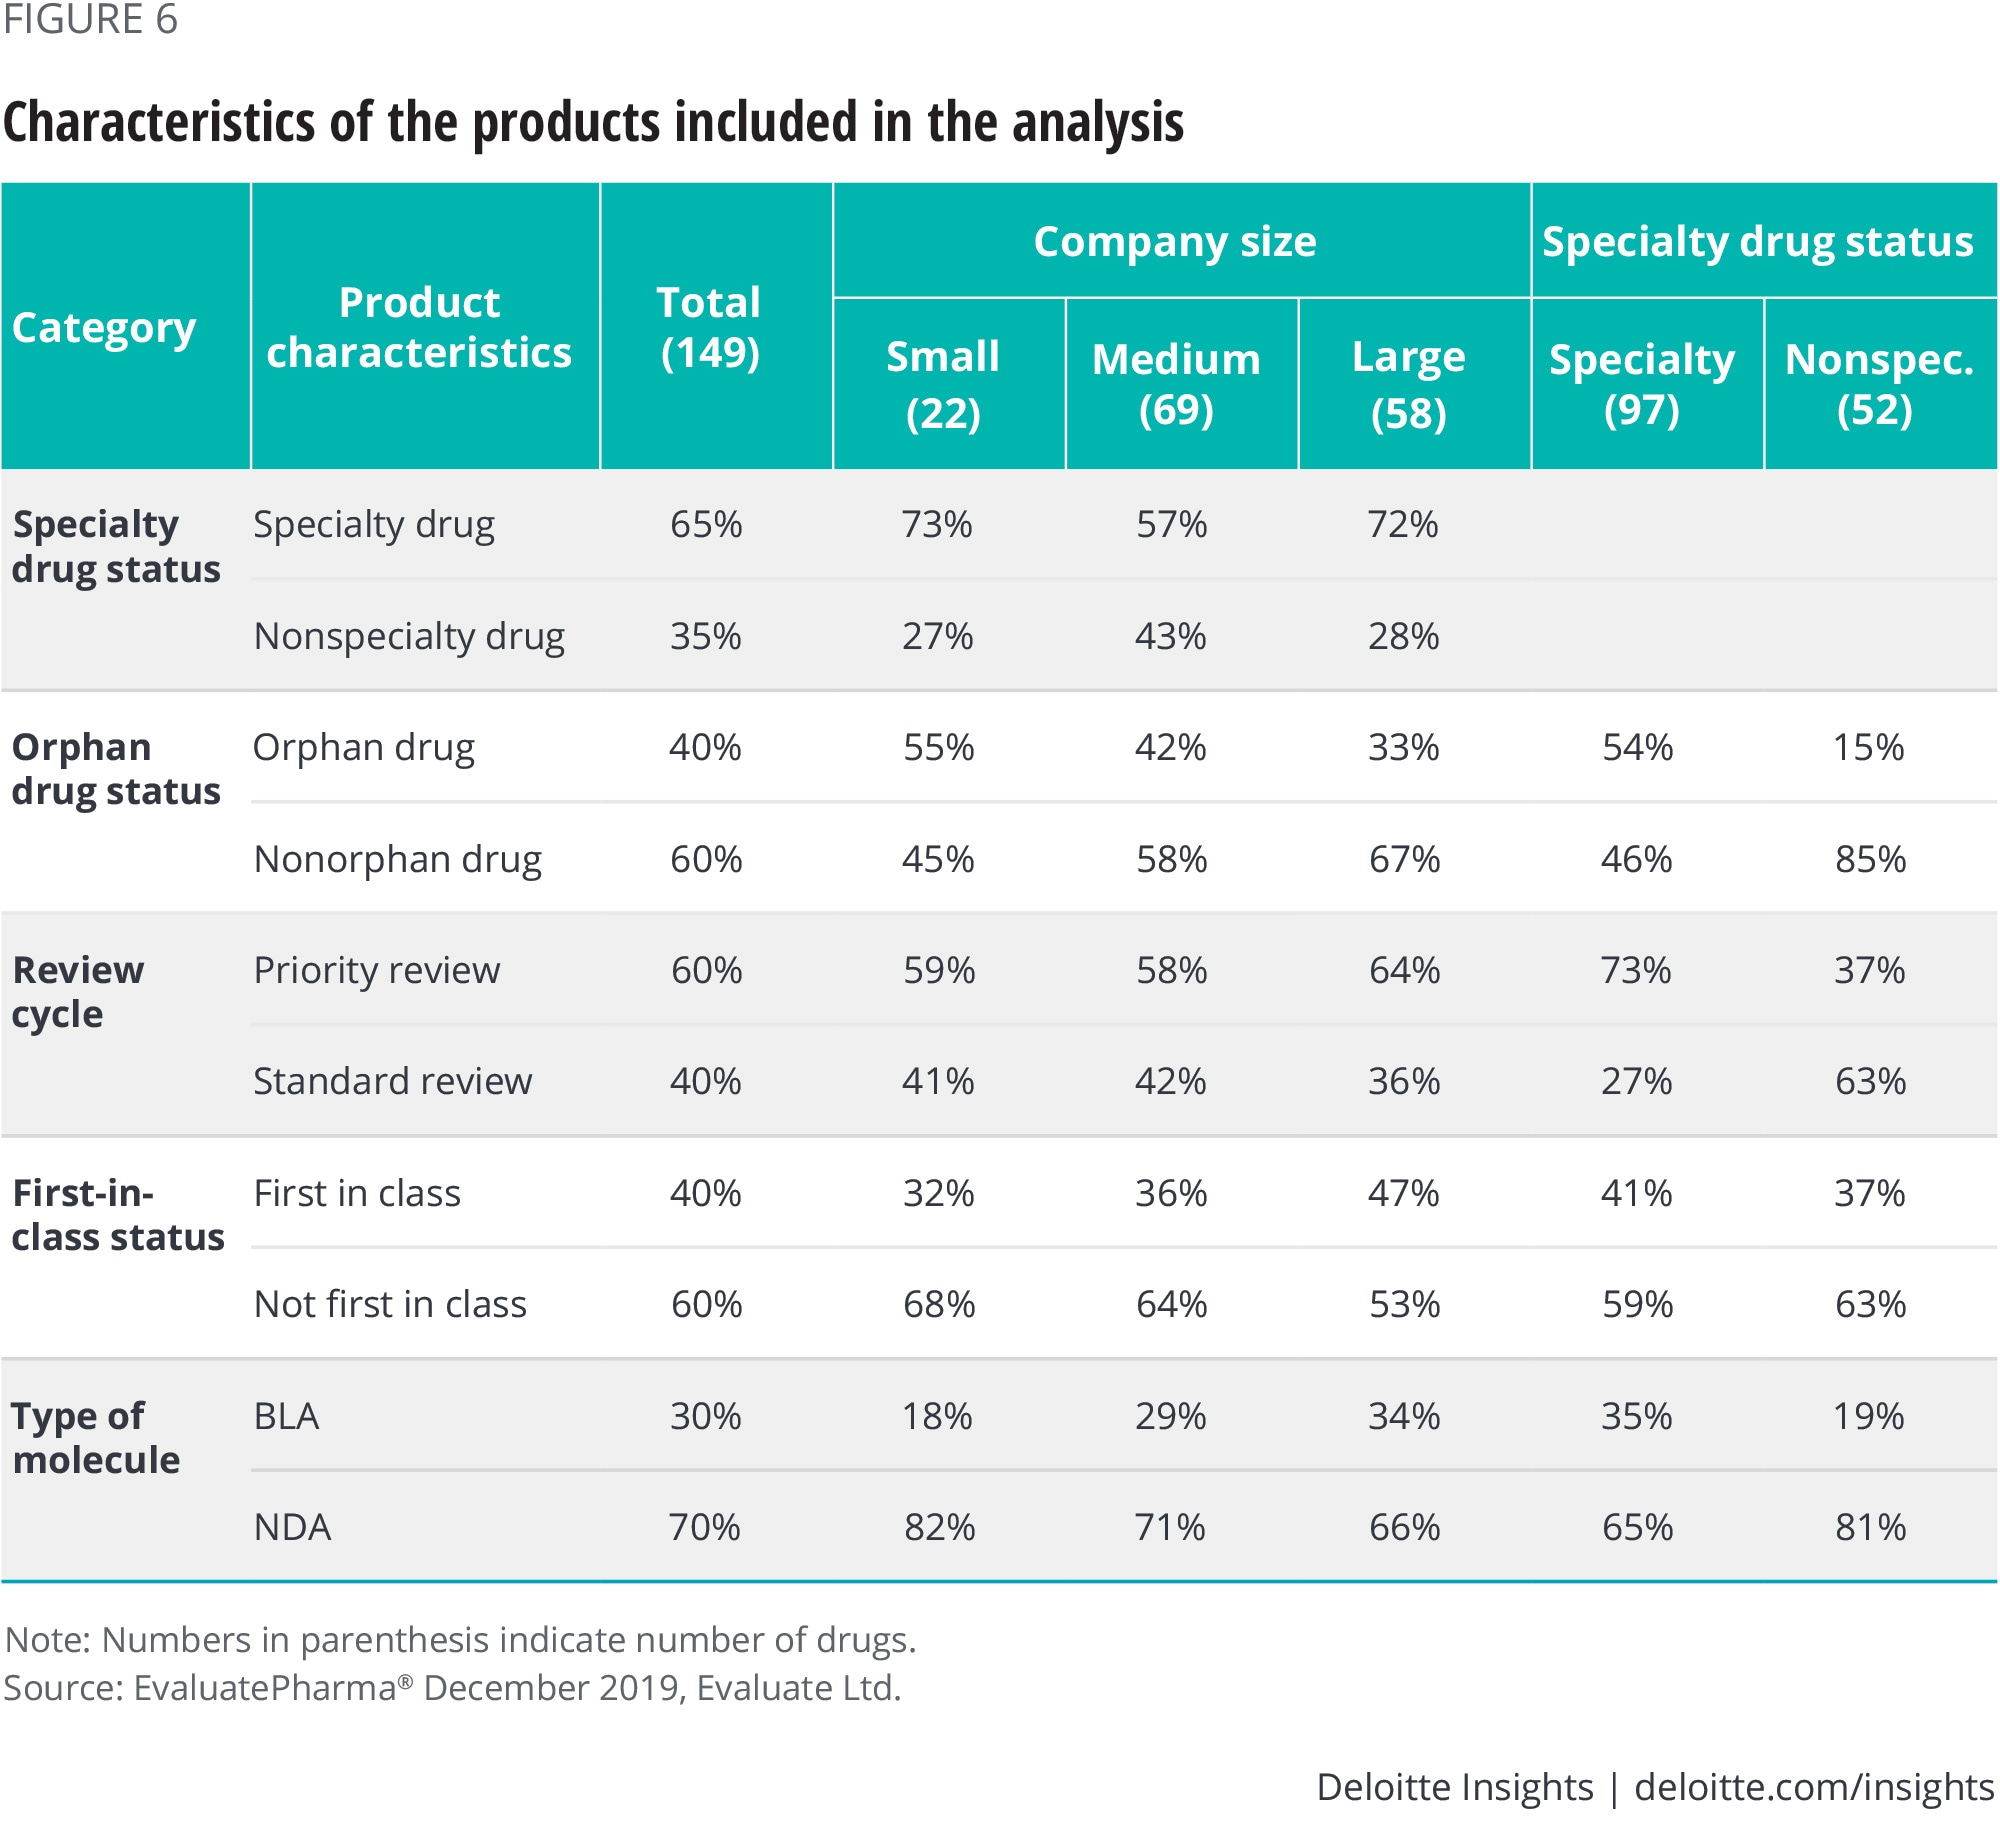 Characteristics of the products included in the analysis